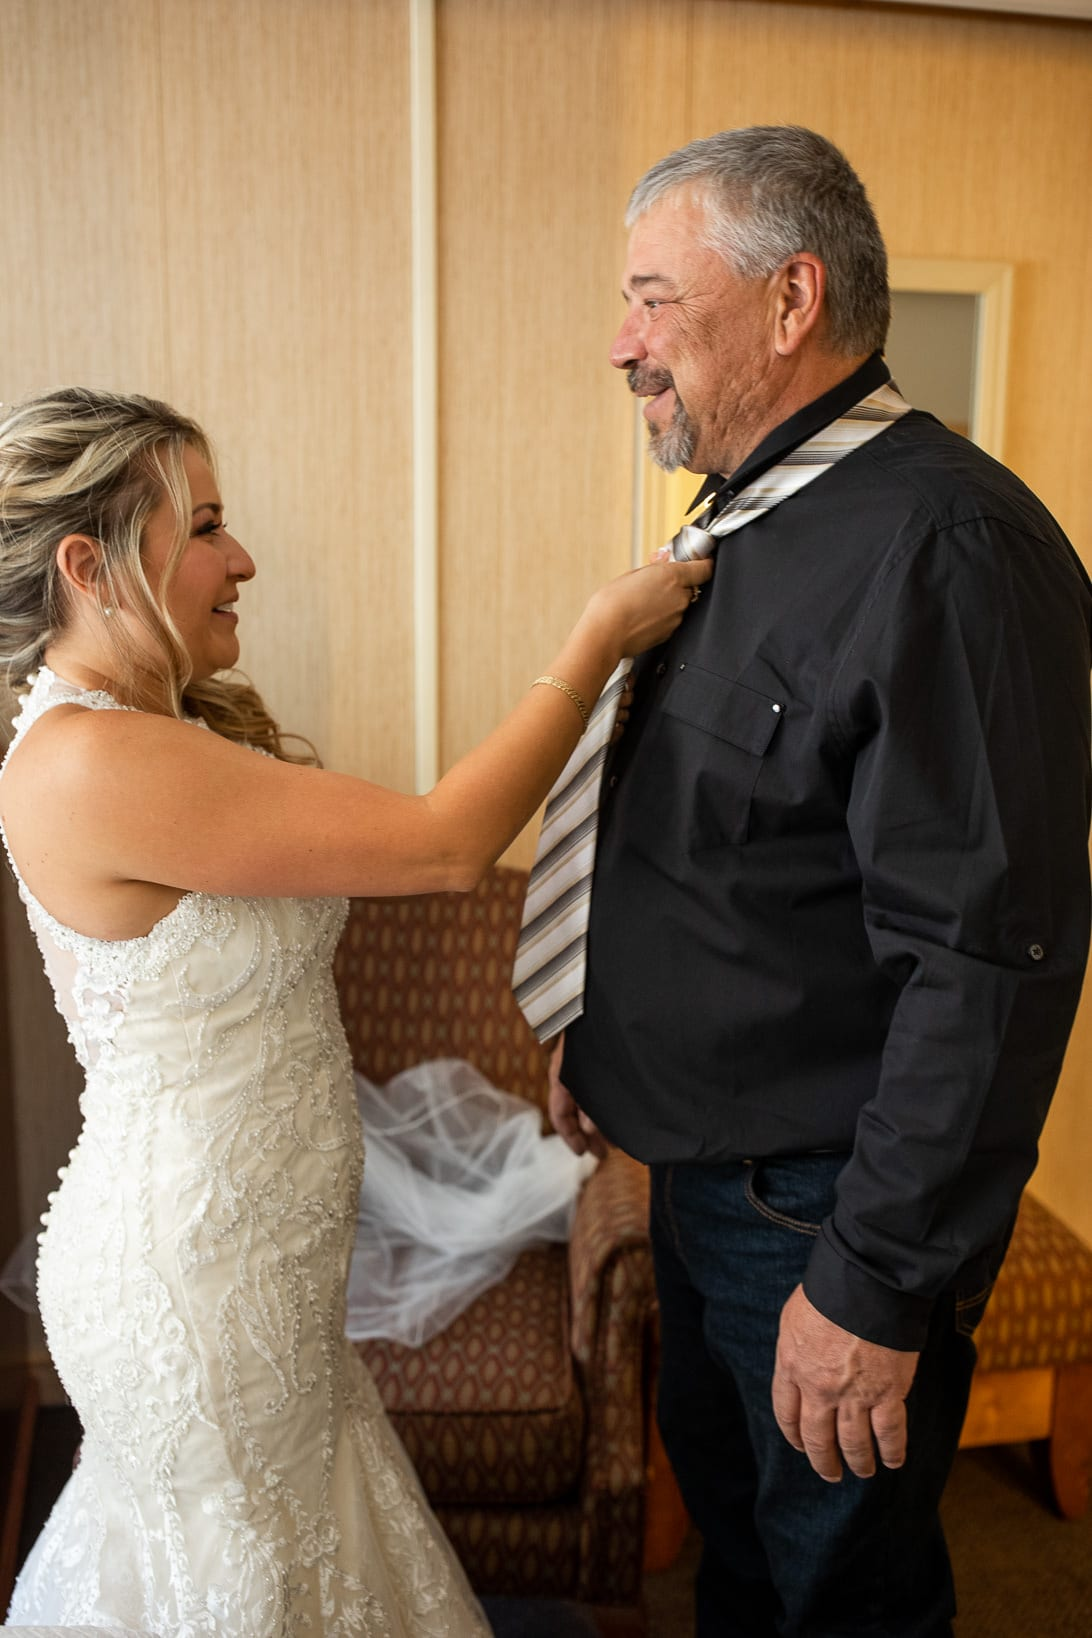 Dad Sees Bride before the wedding